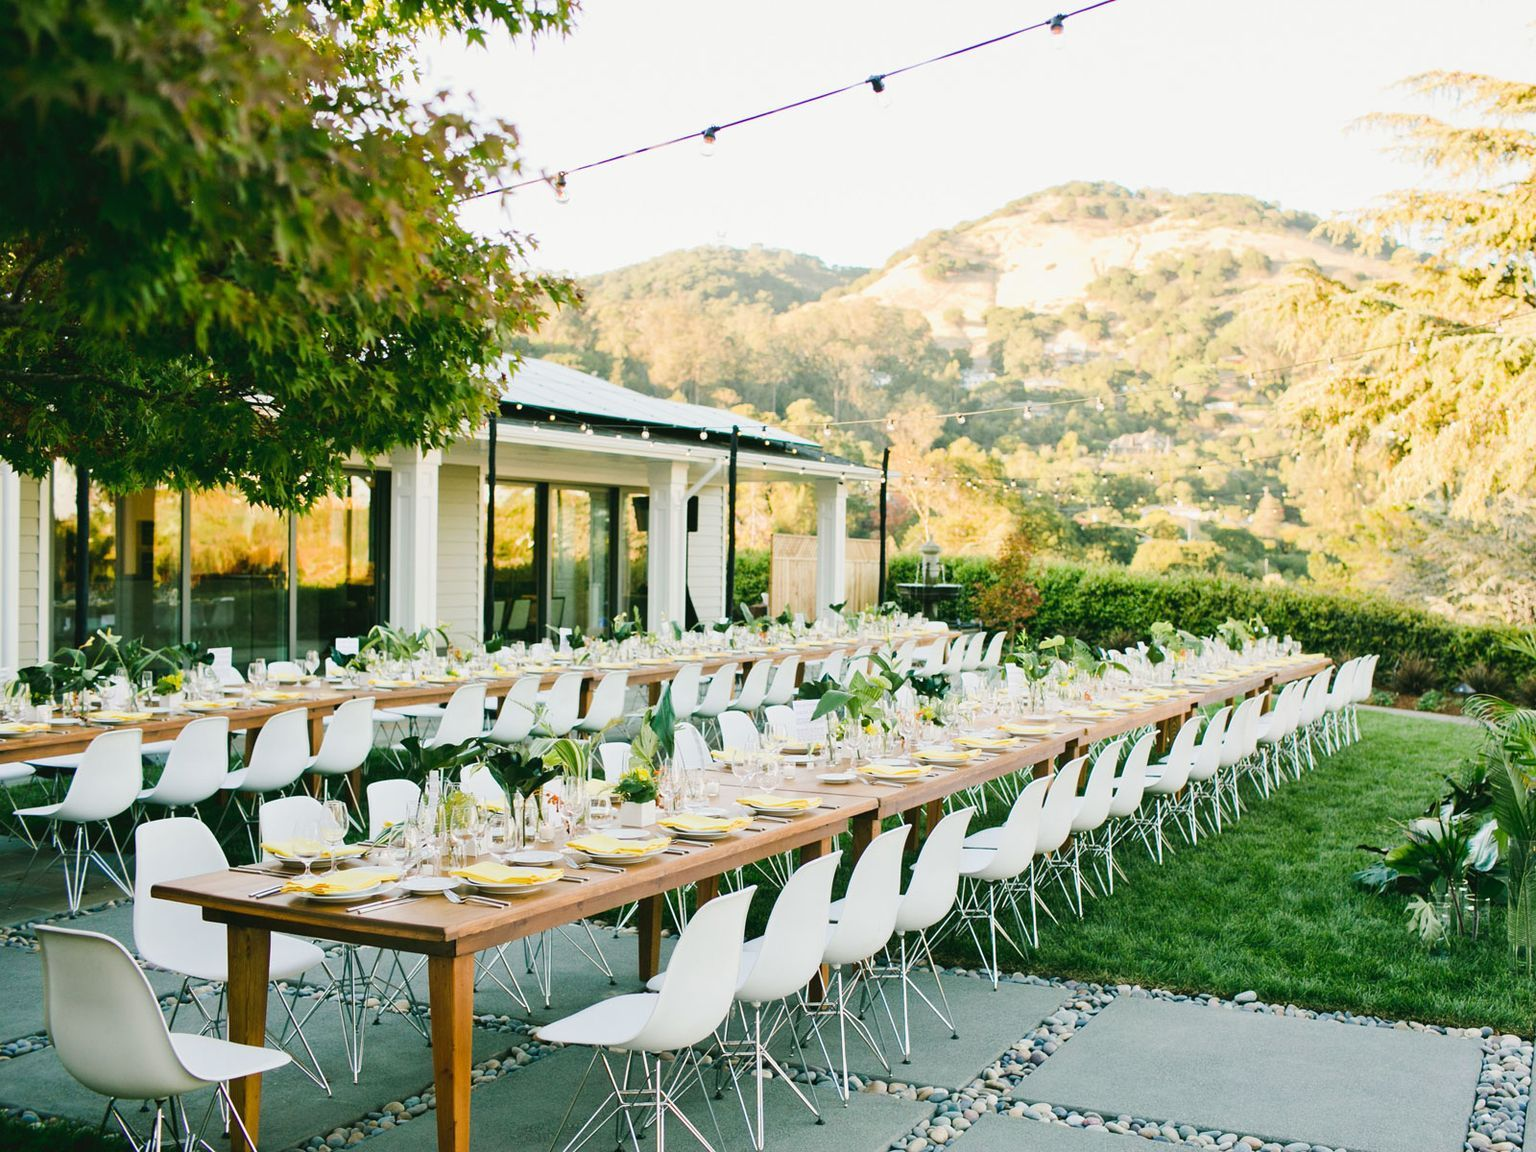 17 Things You Didn't Know About Planning a Wedding in Your ...